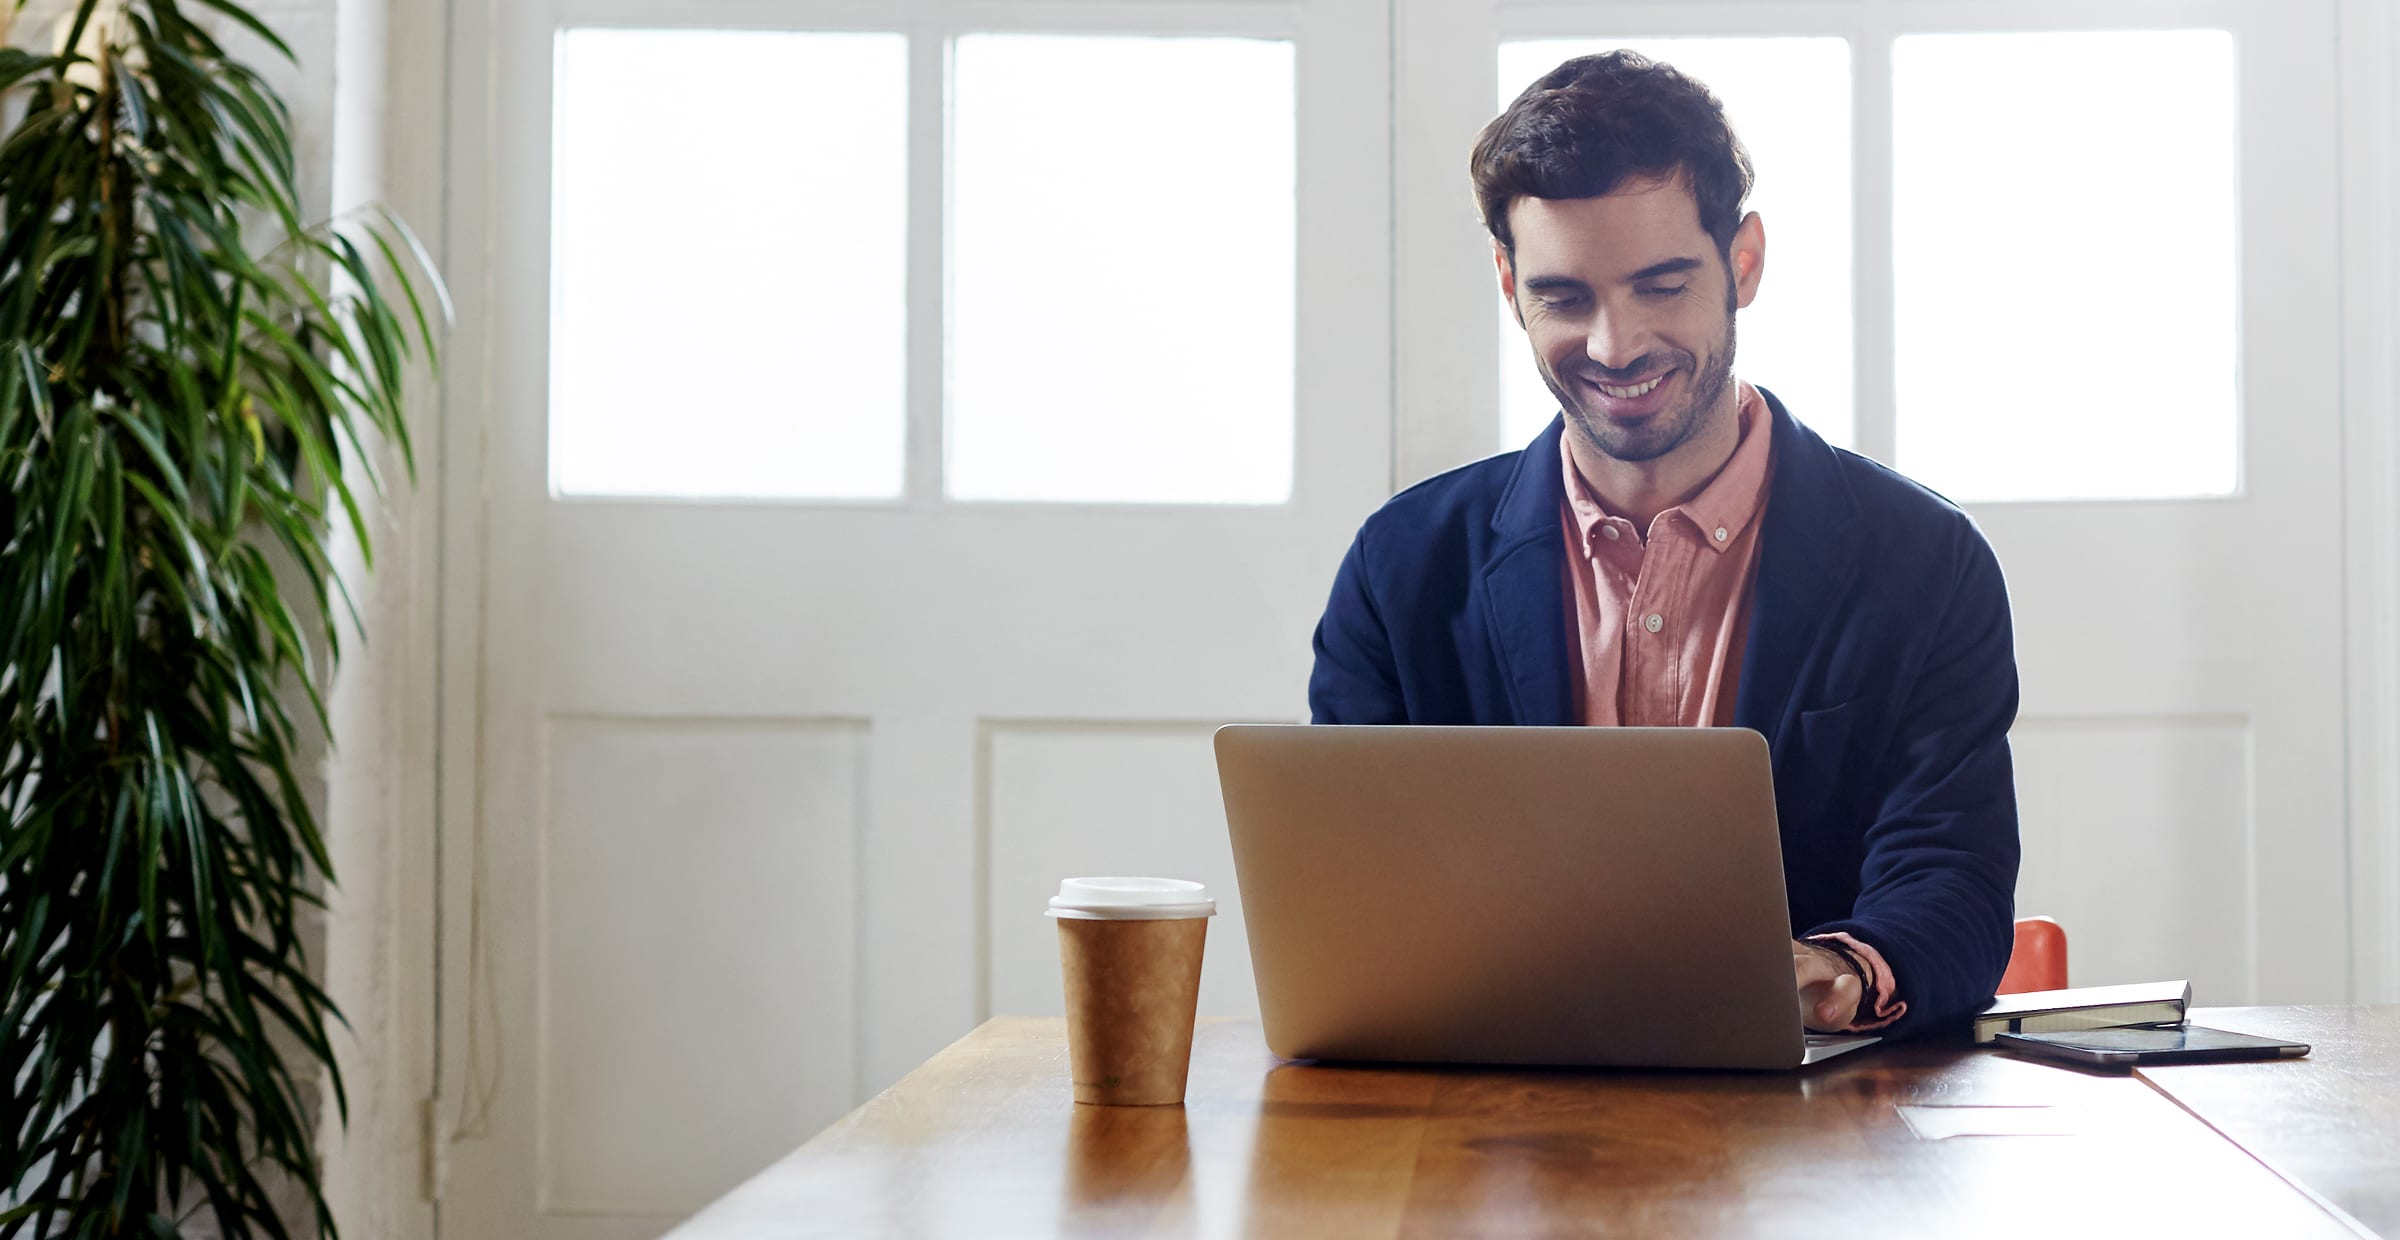 Work-From-Home Style Advice for Men